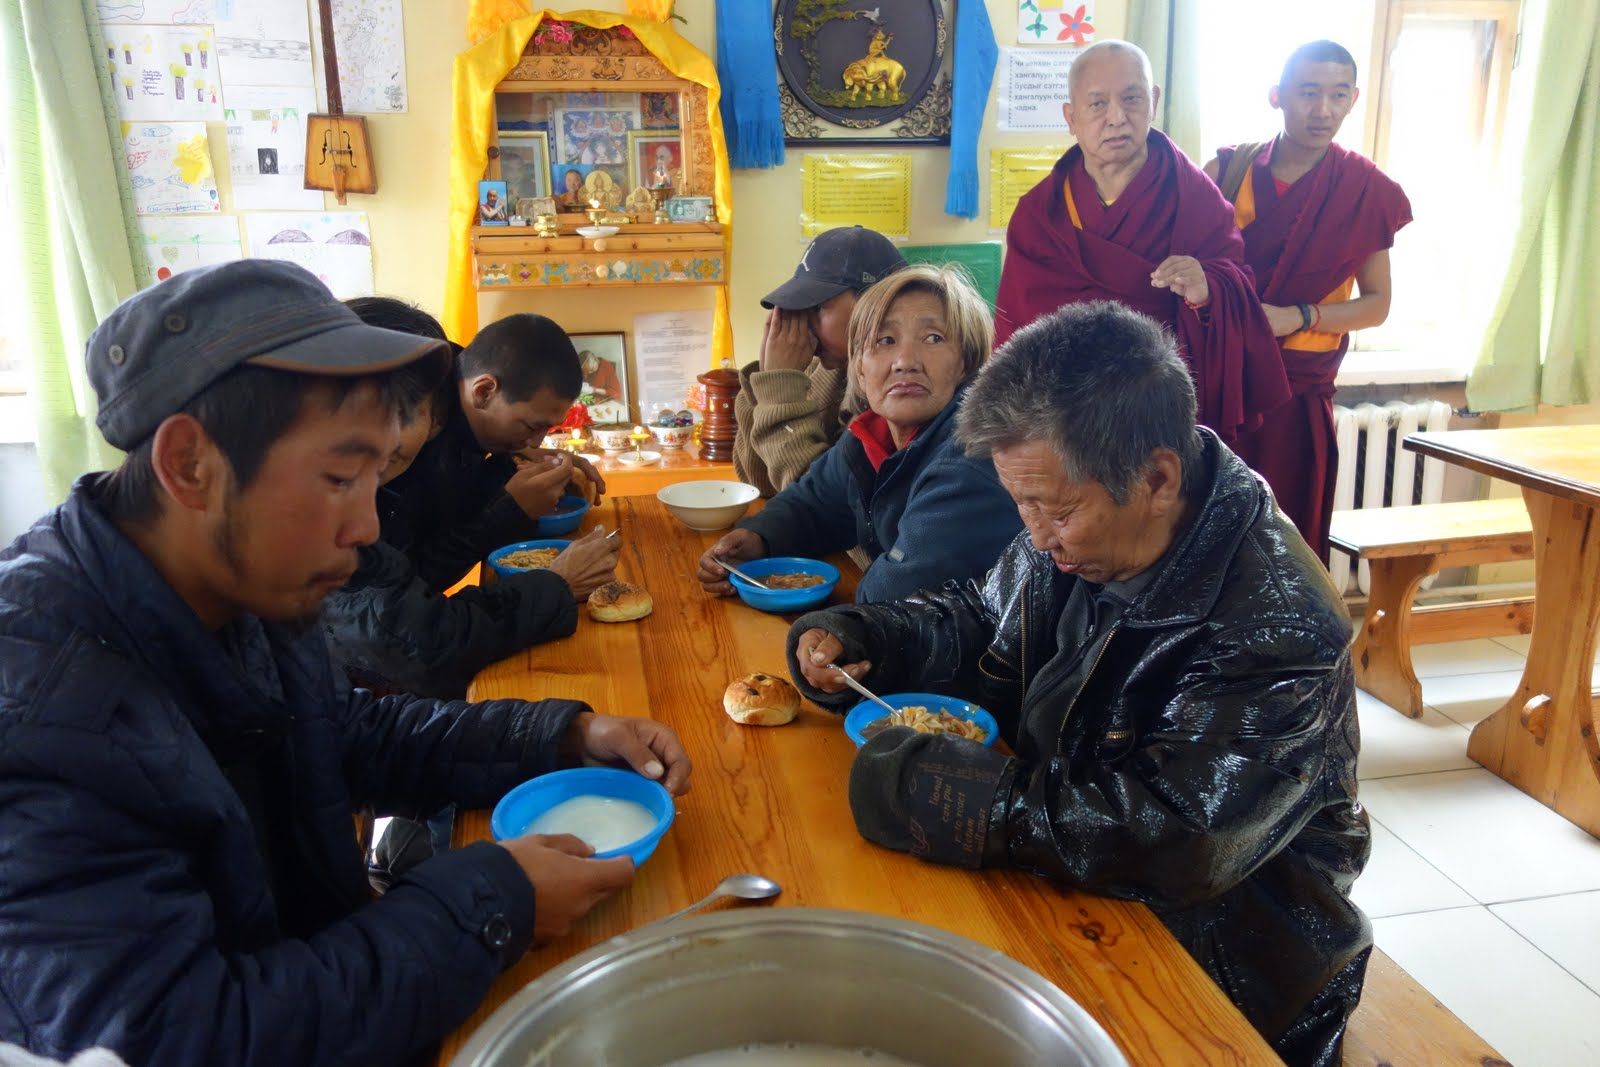 Mongolians eating at FPMT Mongolia's free soup kitchen for the poor and homeless where 60 to 90 meals a day are offered. September 2013 Photo: Ven. Roger Kunsang